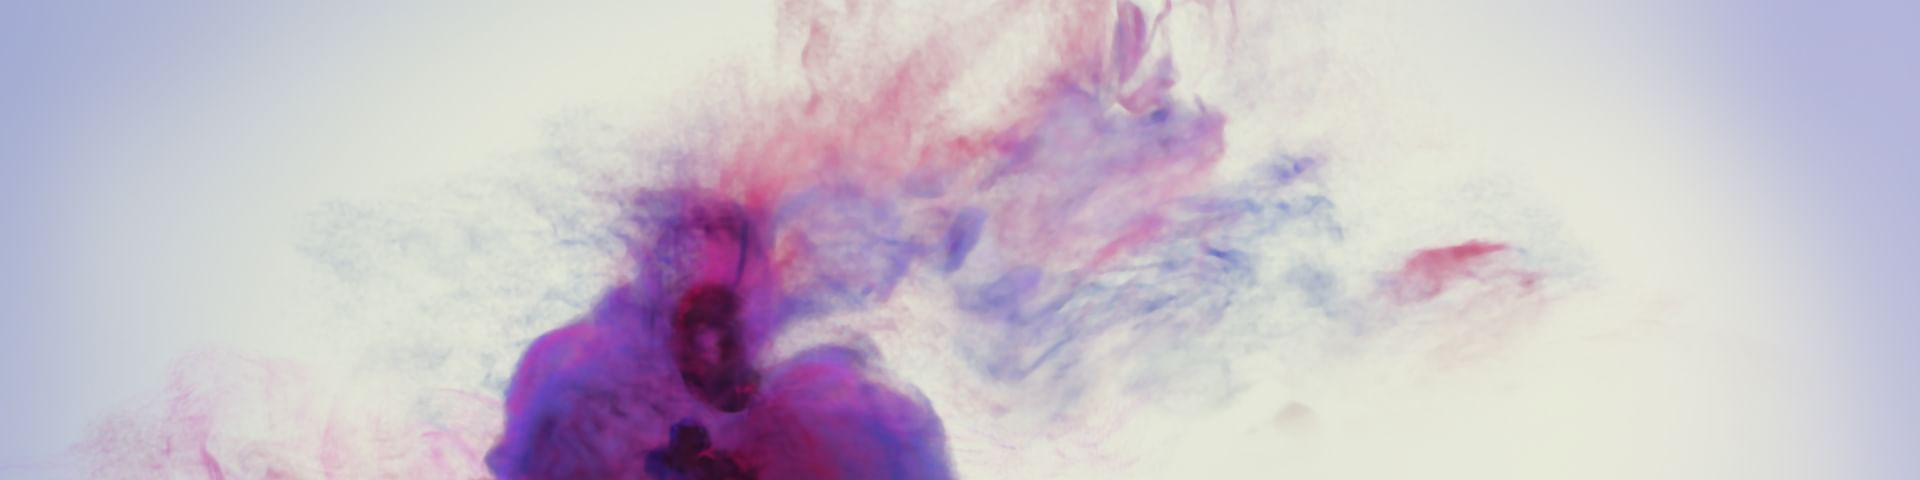 L'Amérique de Walker Evans